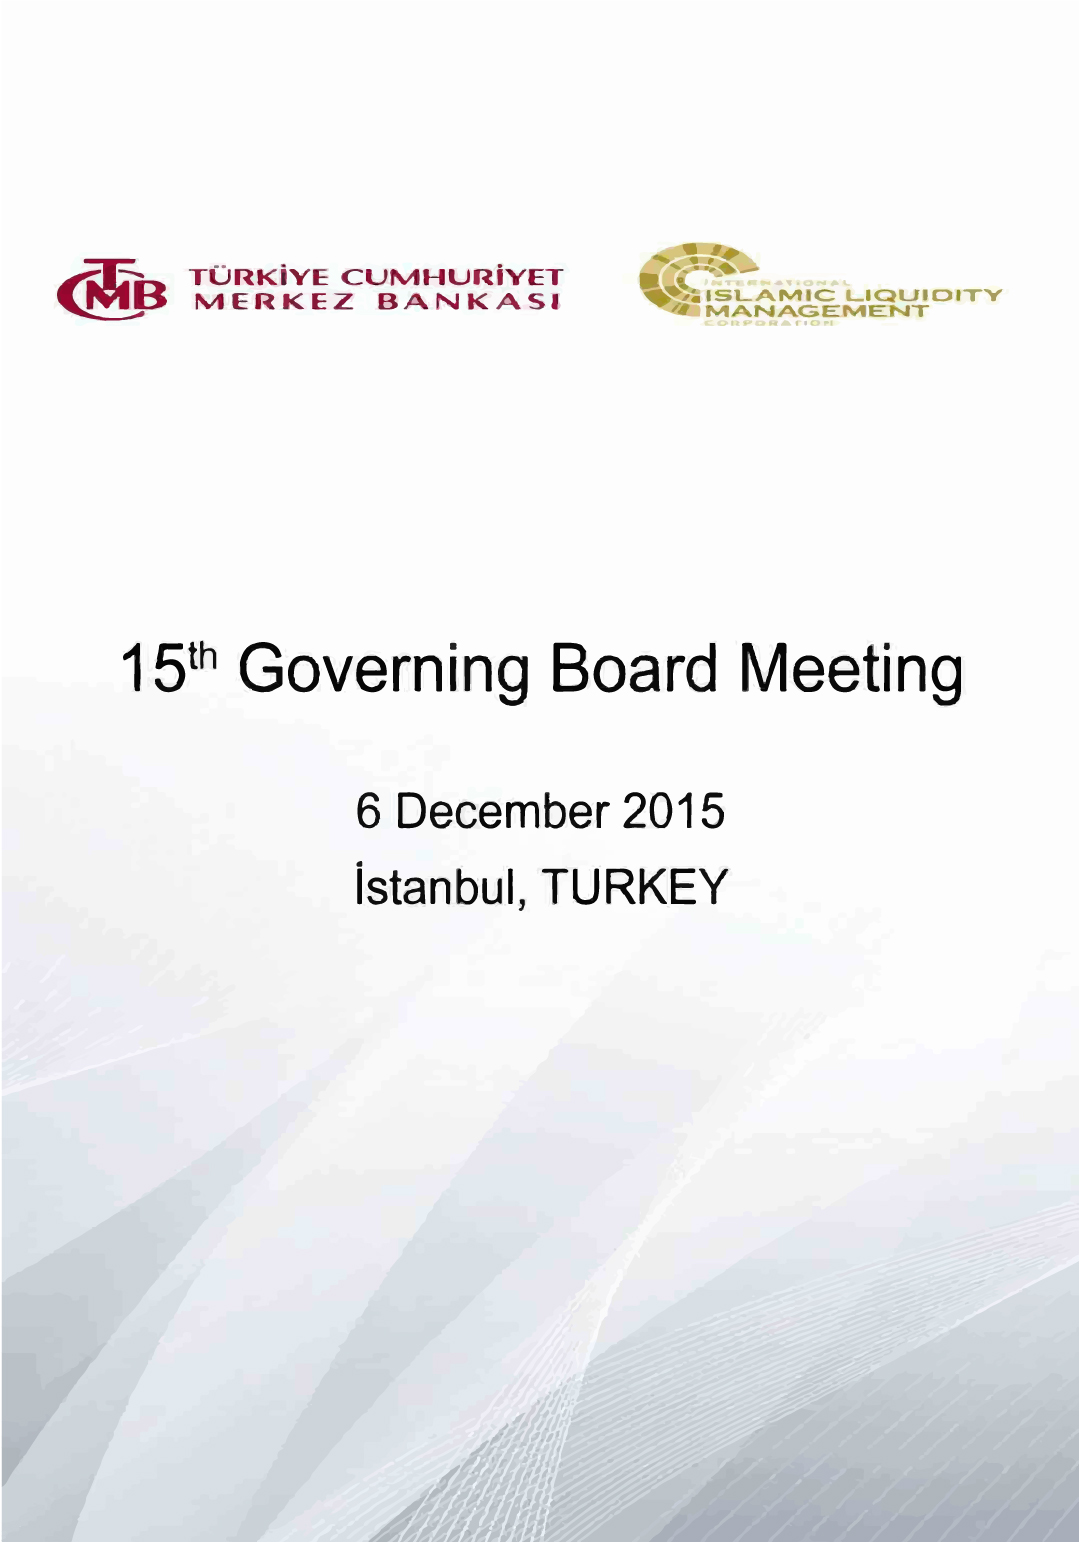 TCMB 15th Governing Board Meeting